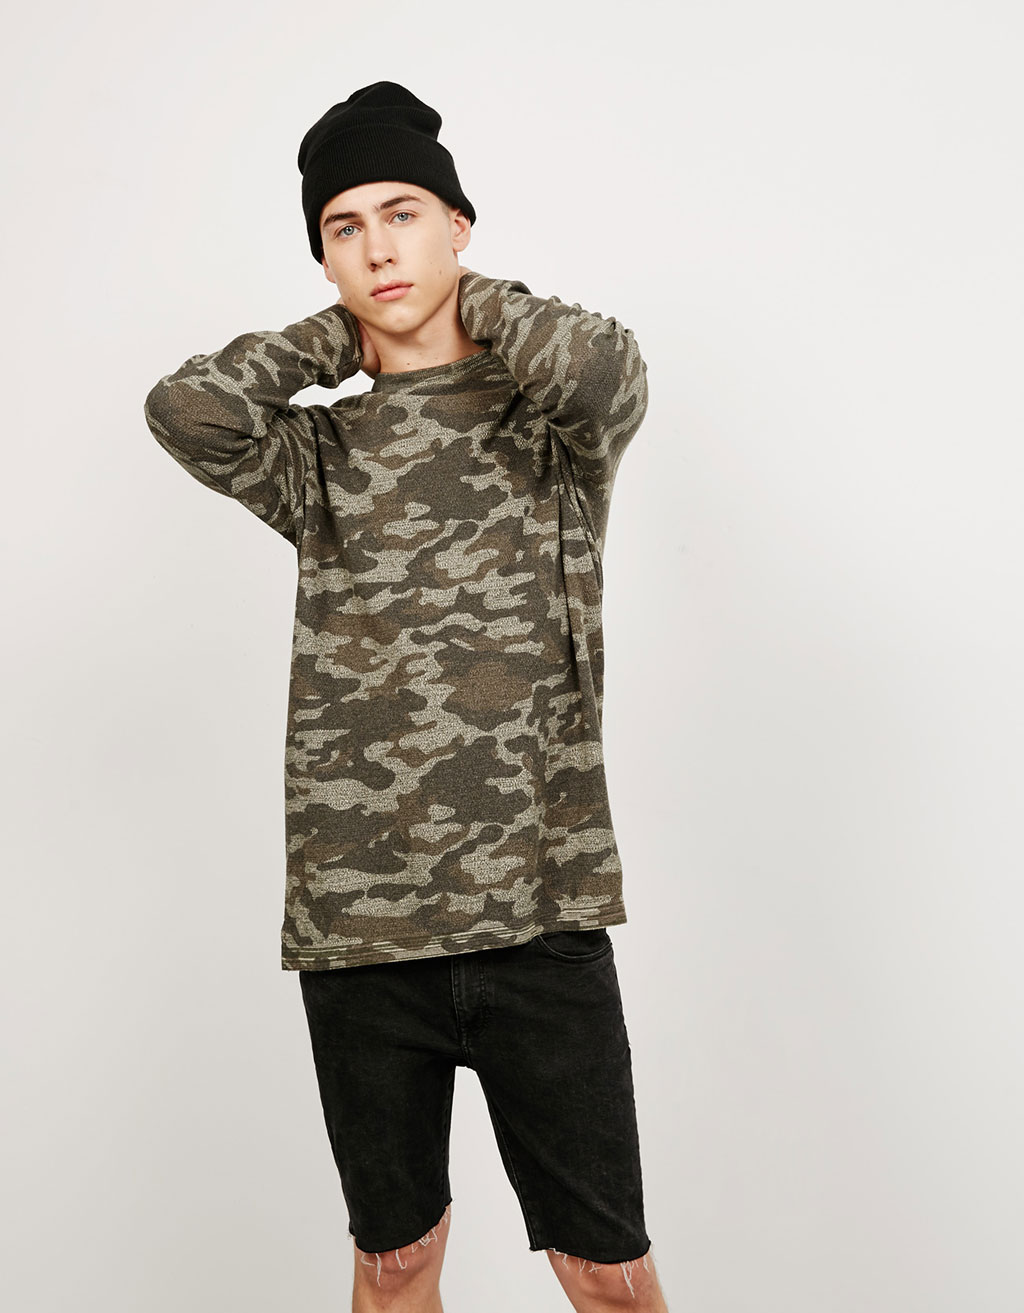 Camouflage jumper